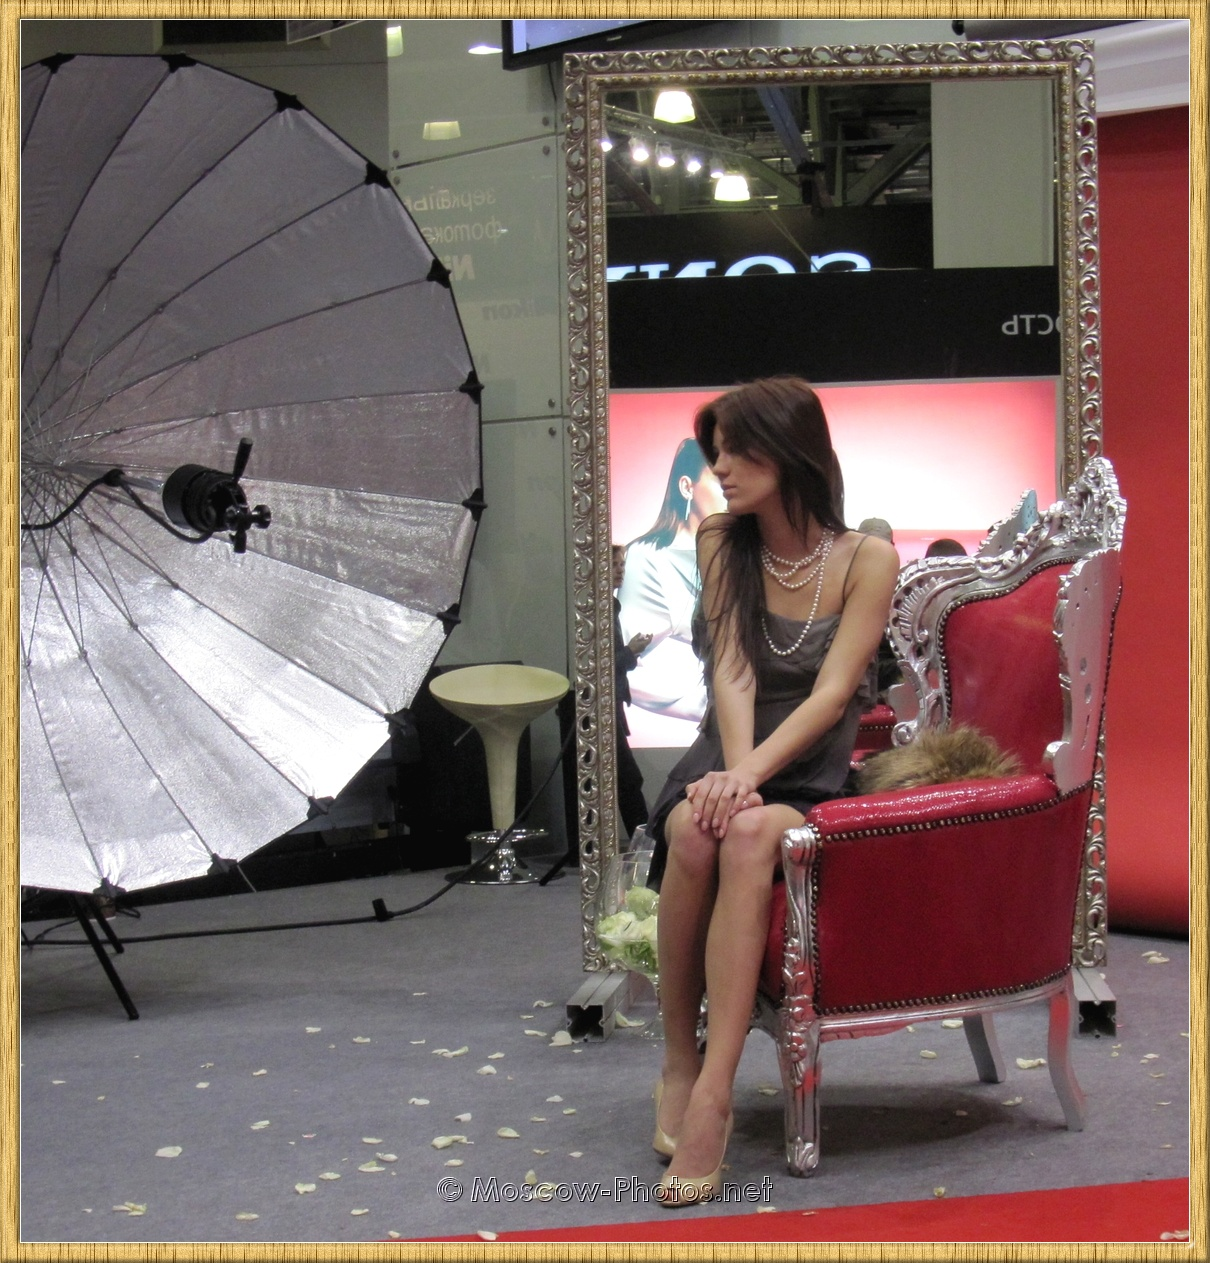 Fashion model posing in a chair